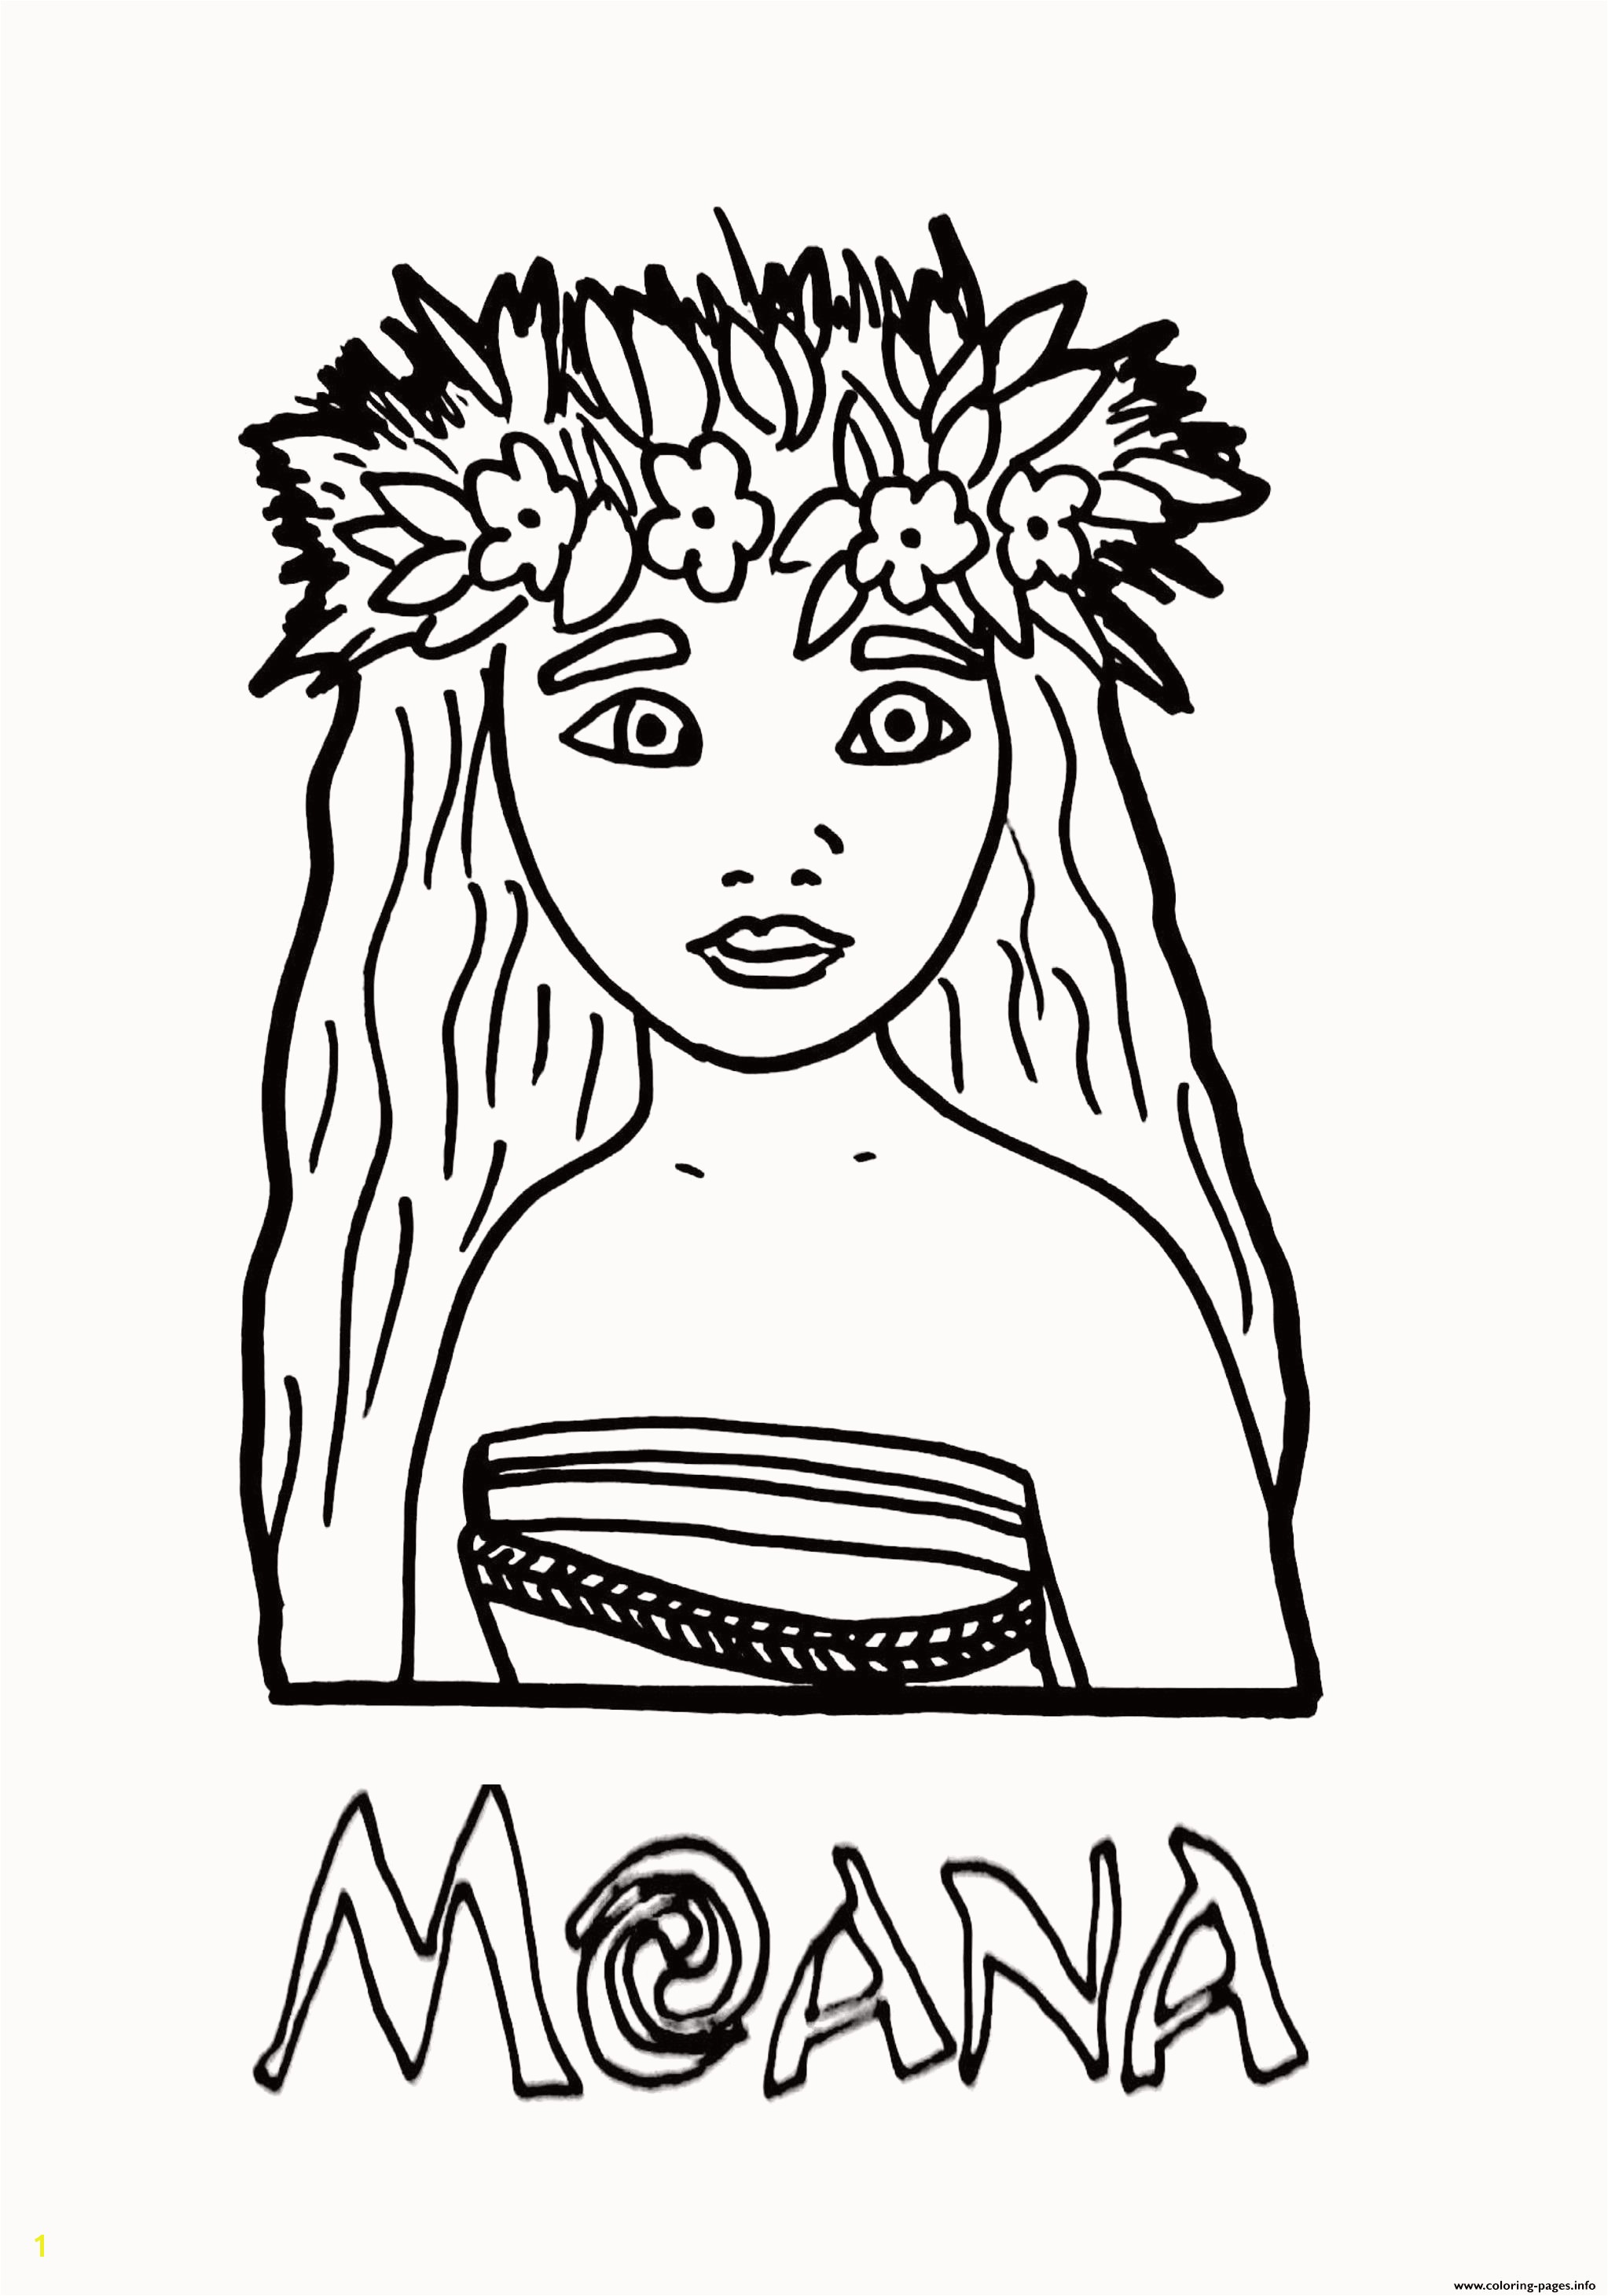 Zoro Coloring Pages 25 Elegant Girl Monkey Coloring Pages